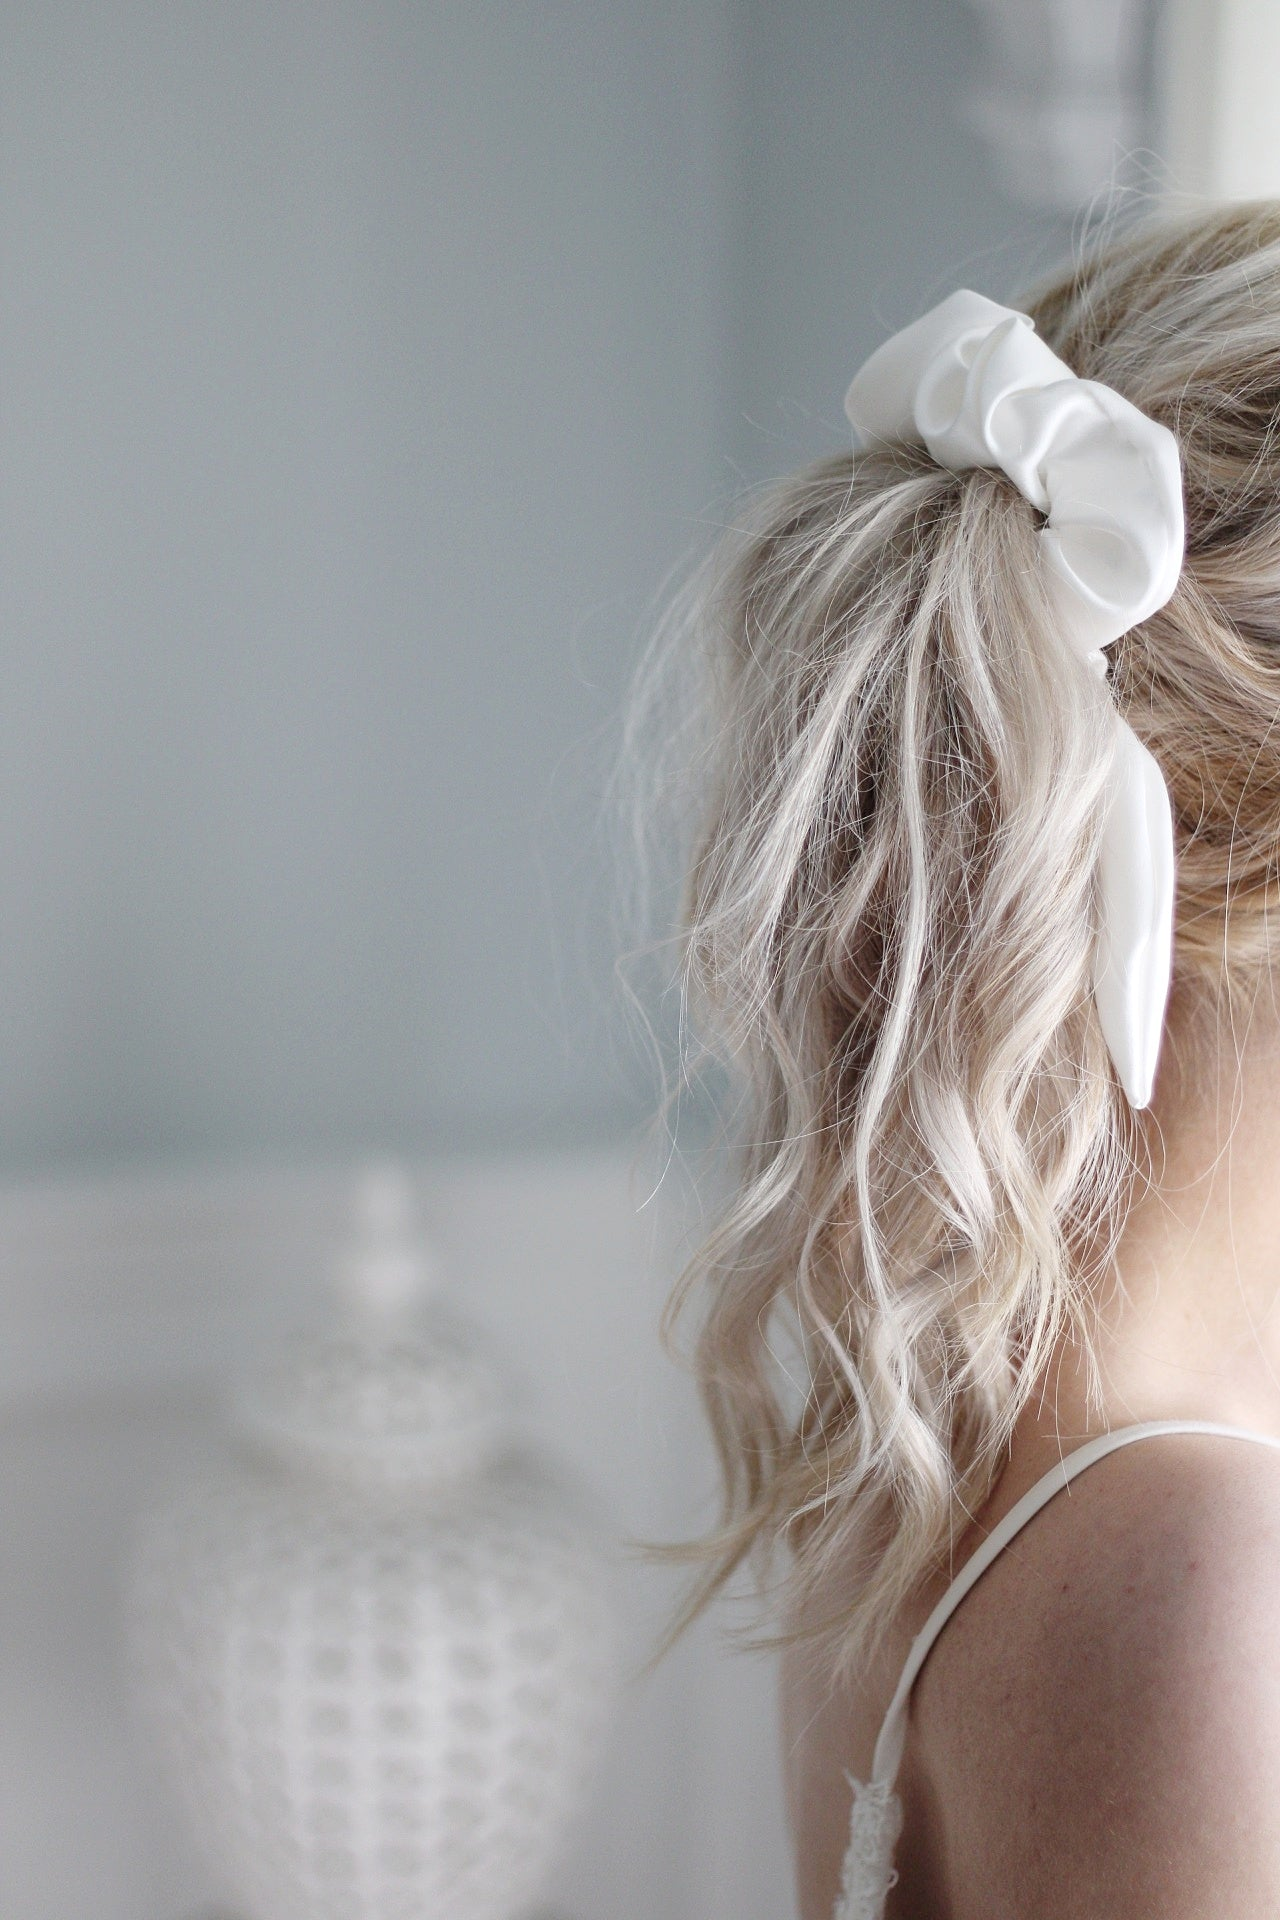 Styling your hair with a luxurious scrunchie